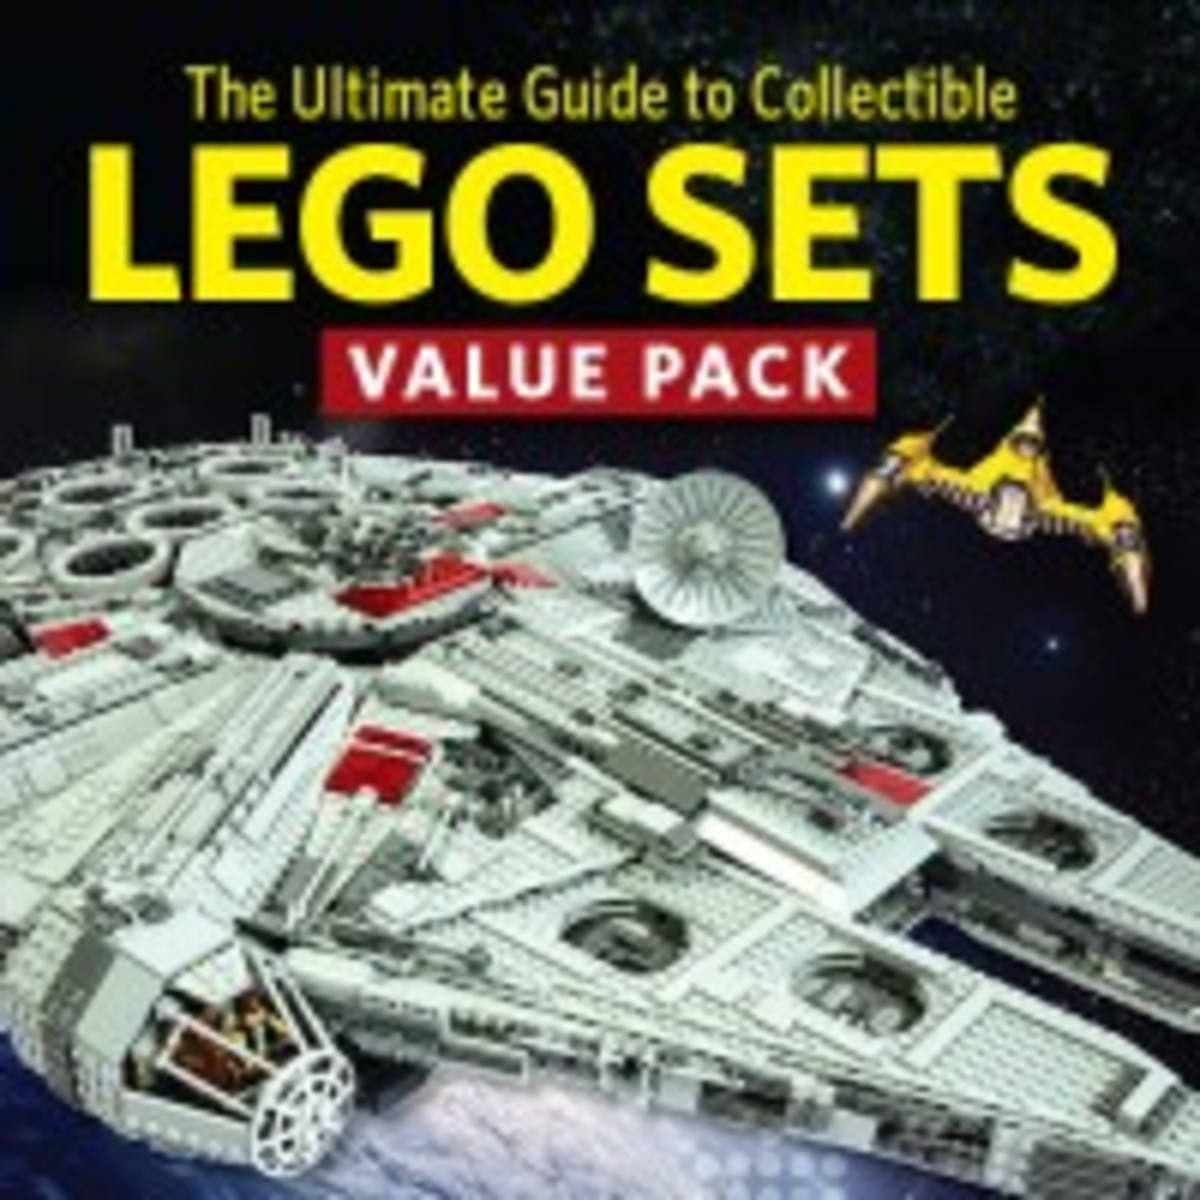 LEGO Sets Value Pack